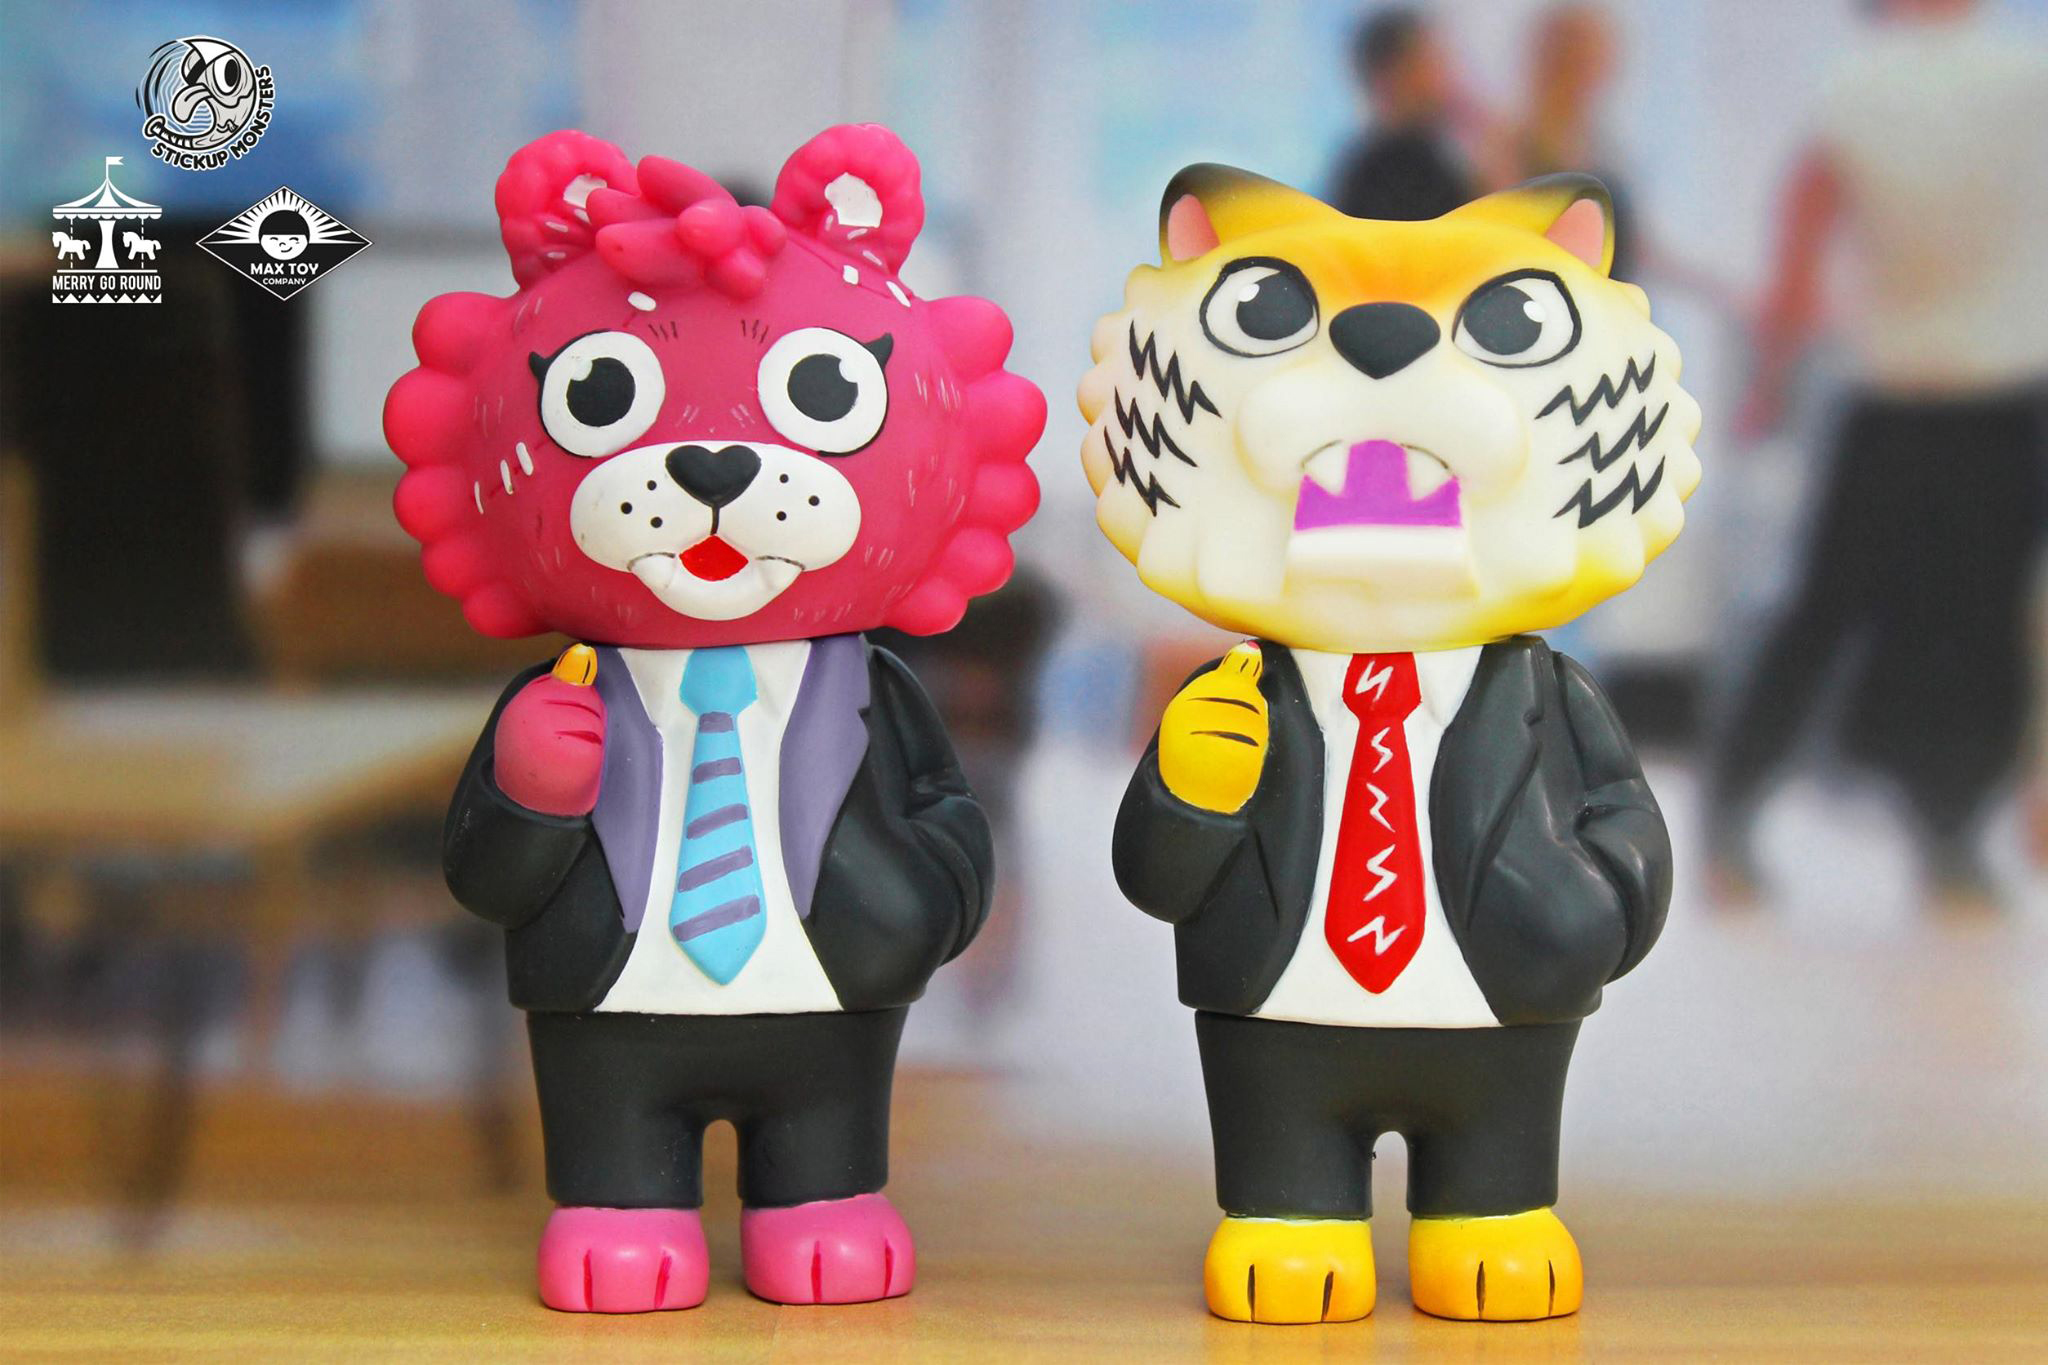 Pre Order - SET - New Tiger Boss & FAKE Tiger Boss  Javier Jimenez x Merry Go Round x Max Toy Co